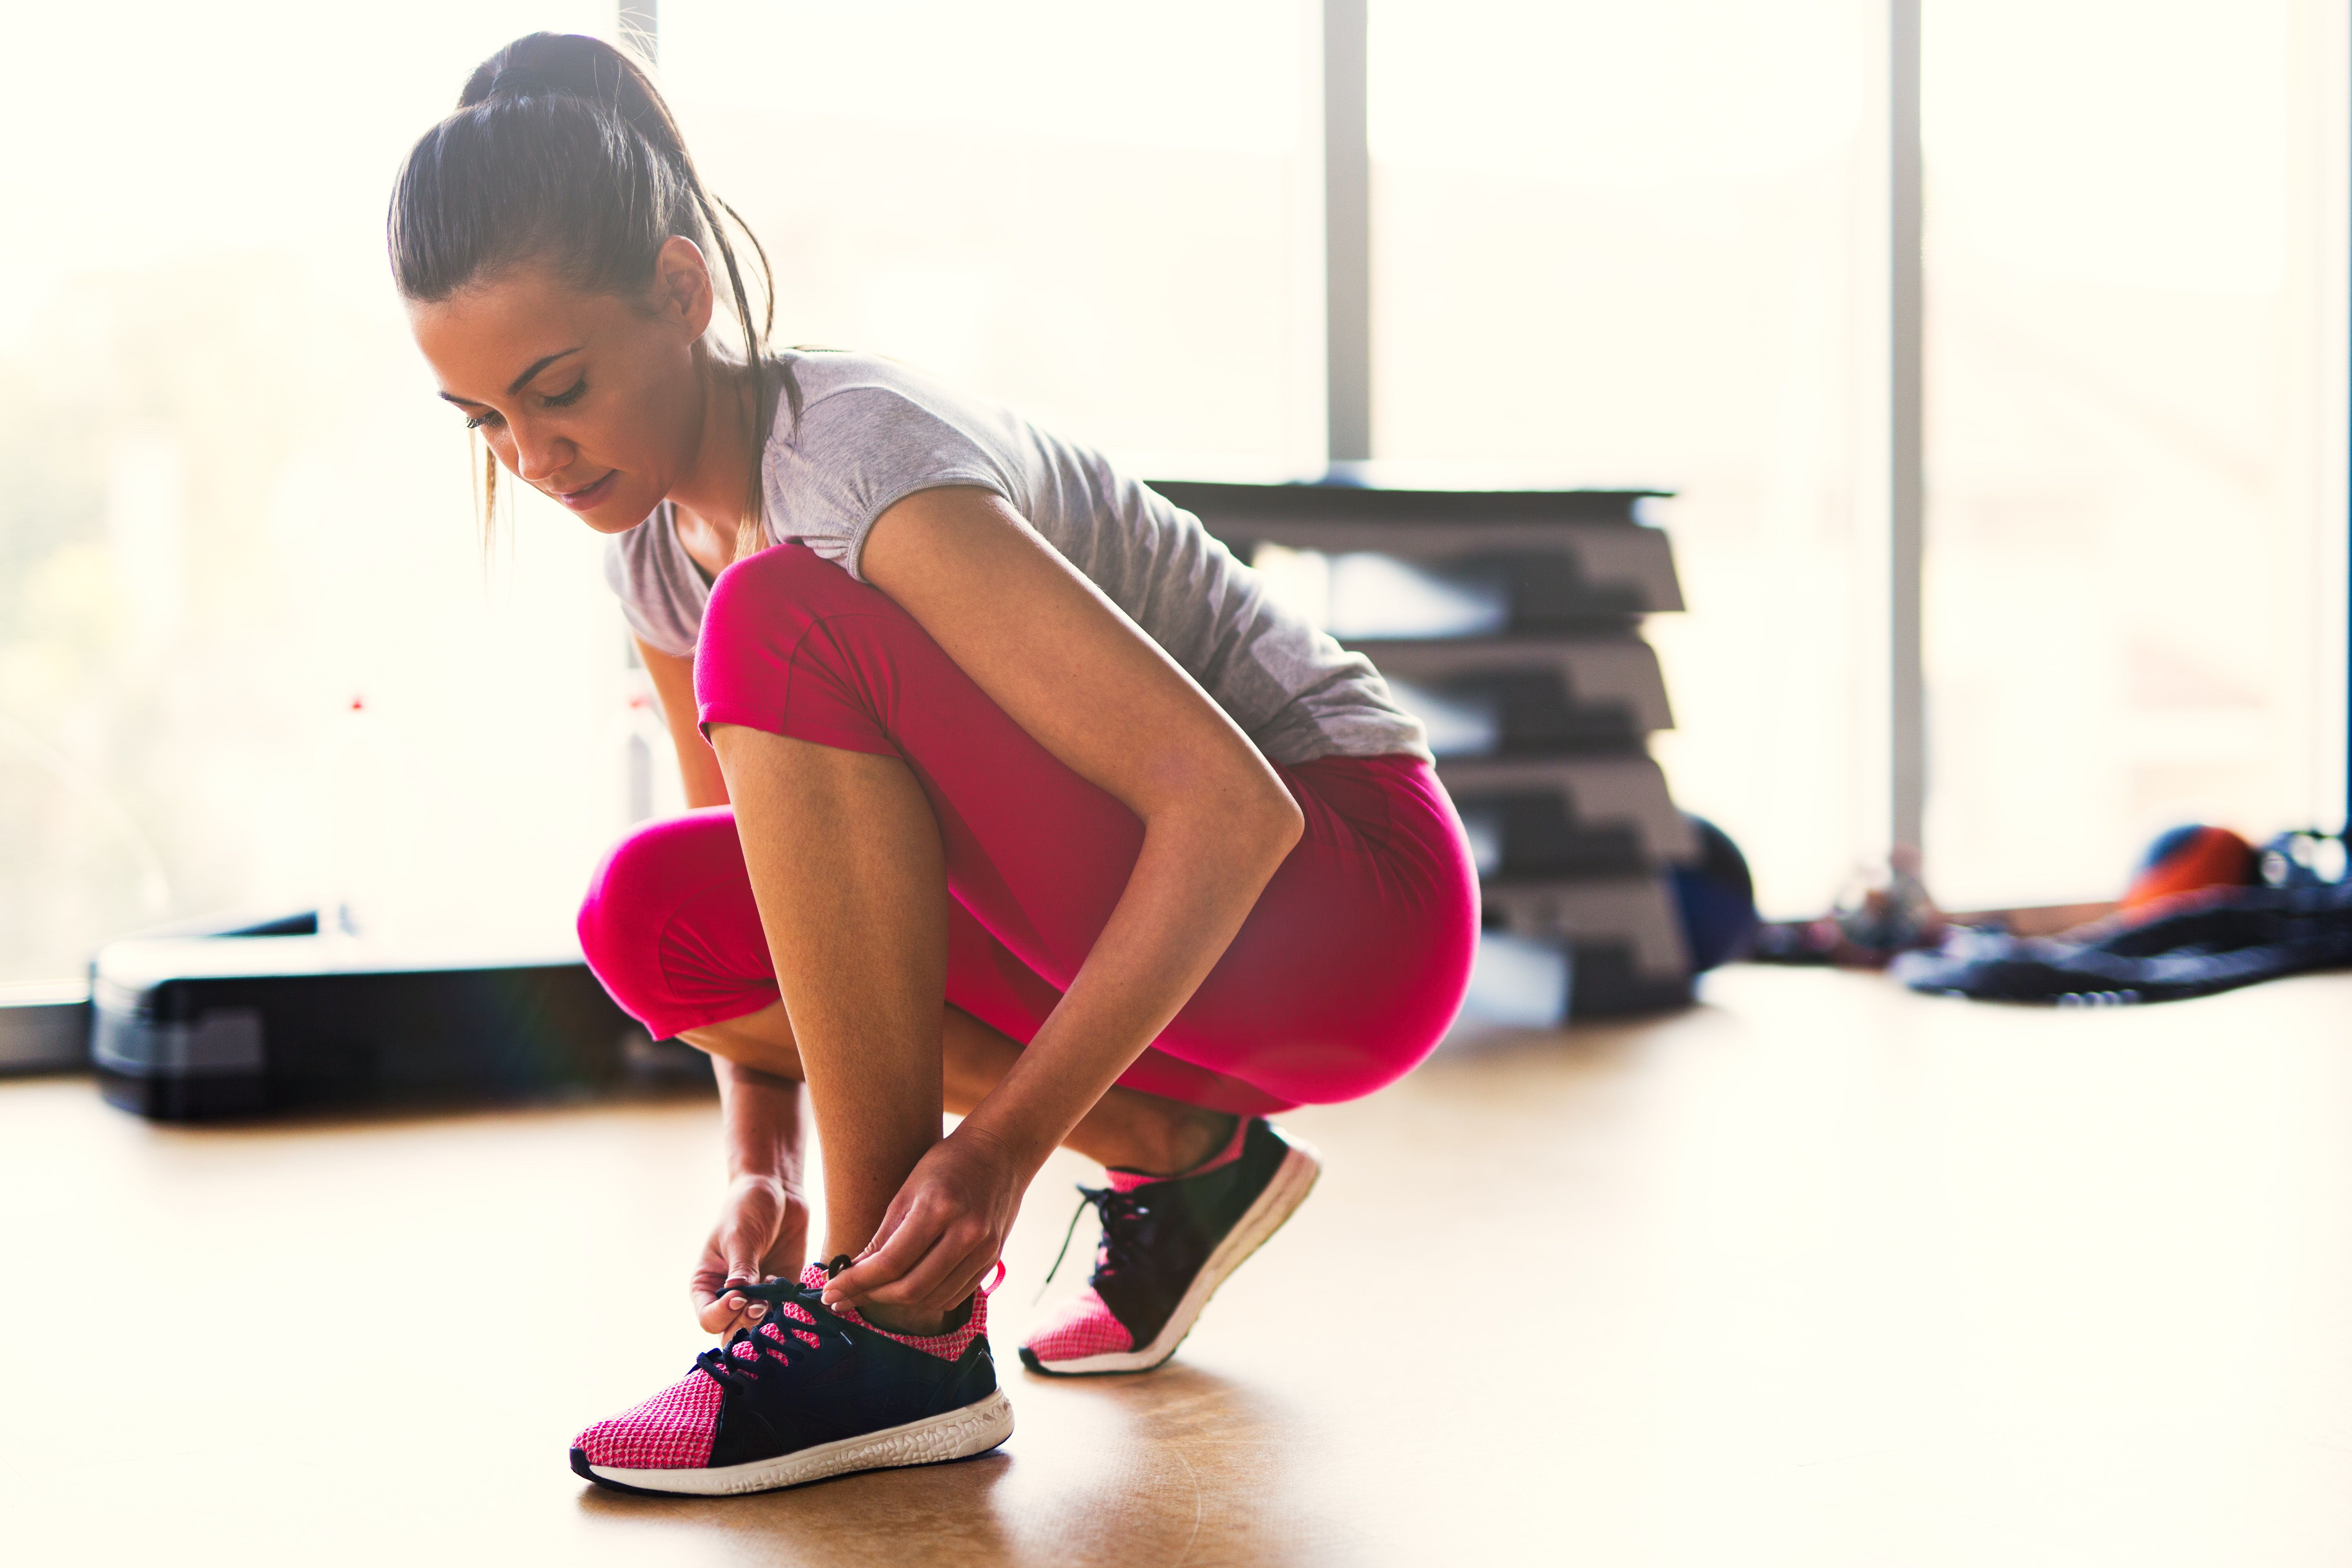 How To Get Motivated To Exercise And Stay that Way